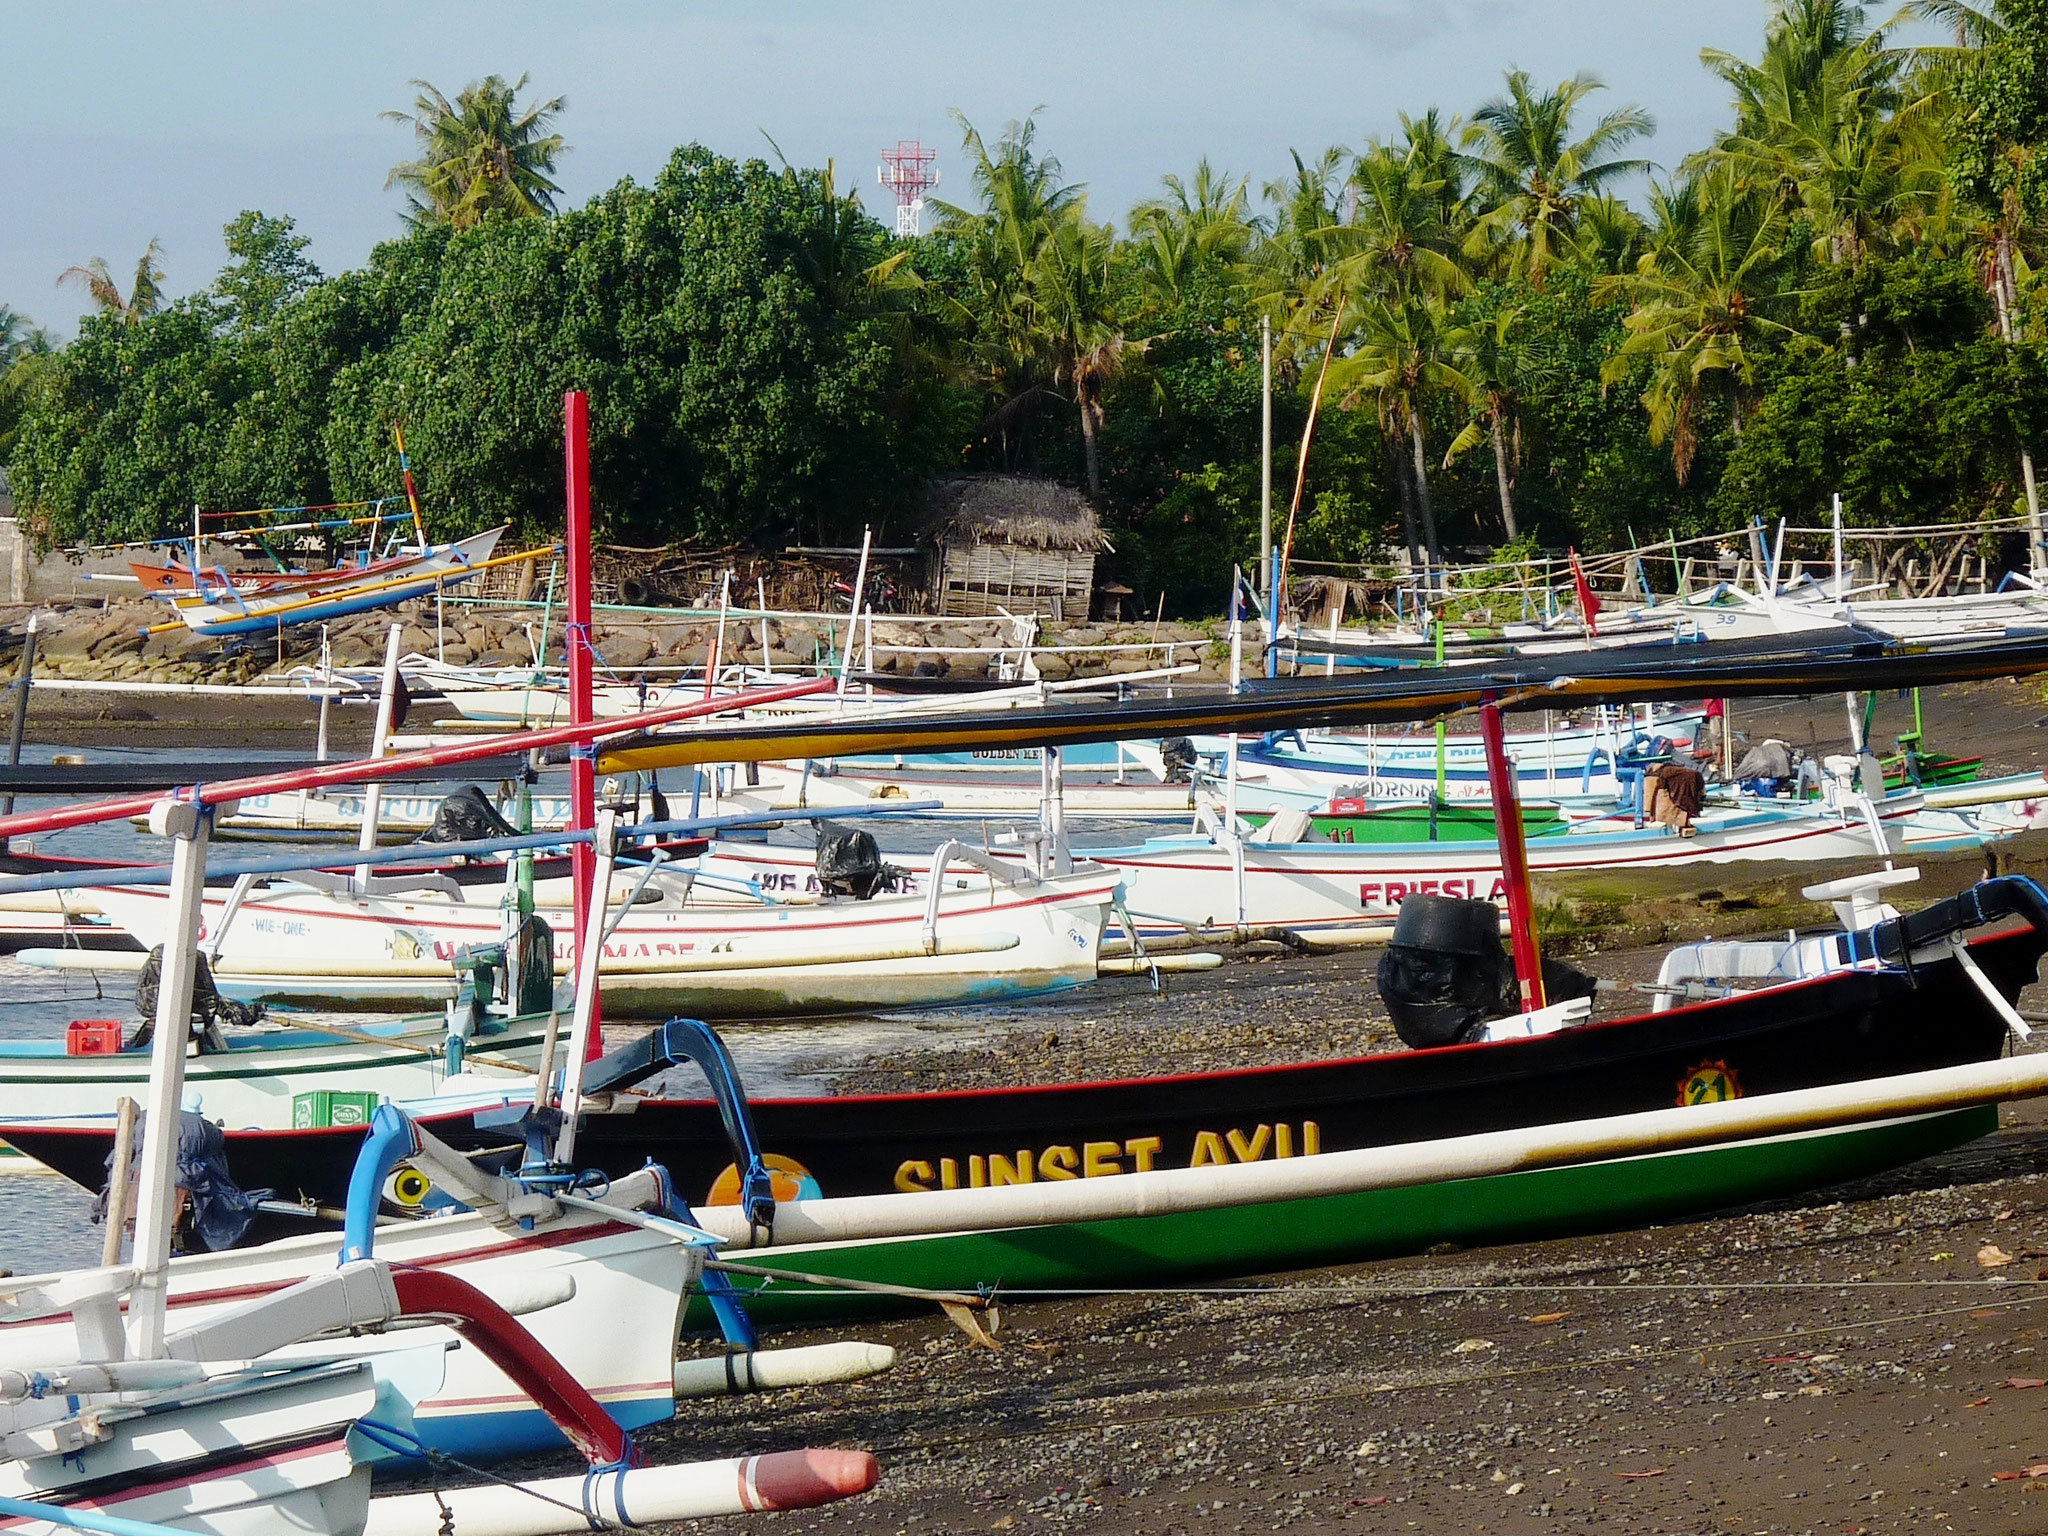 The beach of Banyualit